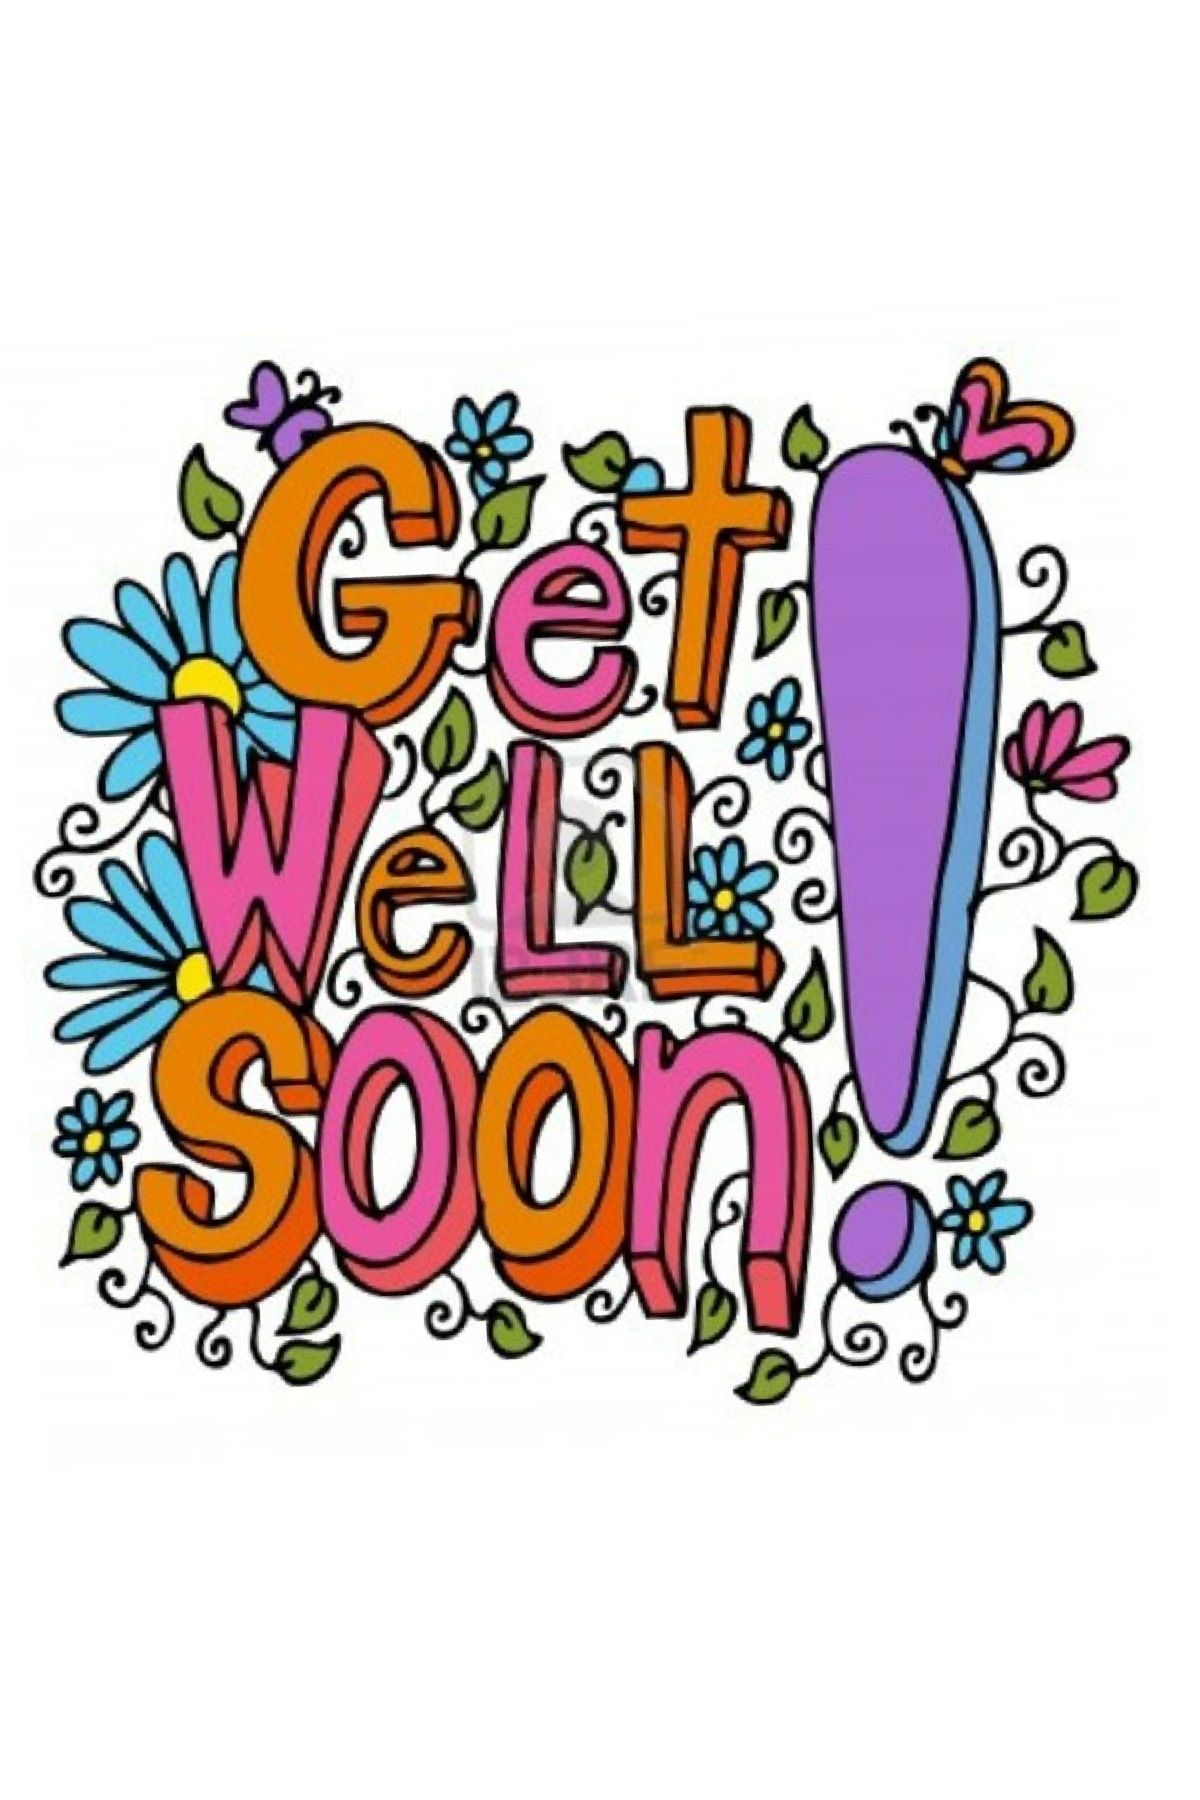 Particular Clients Explore Get Well Get Well Soon Messages Family Get Well Soon Messages Get Well Soon Comfort Pinterest Get Well Soon Messages